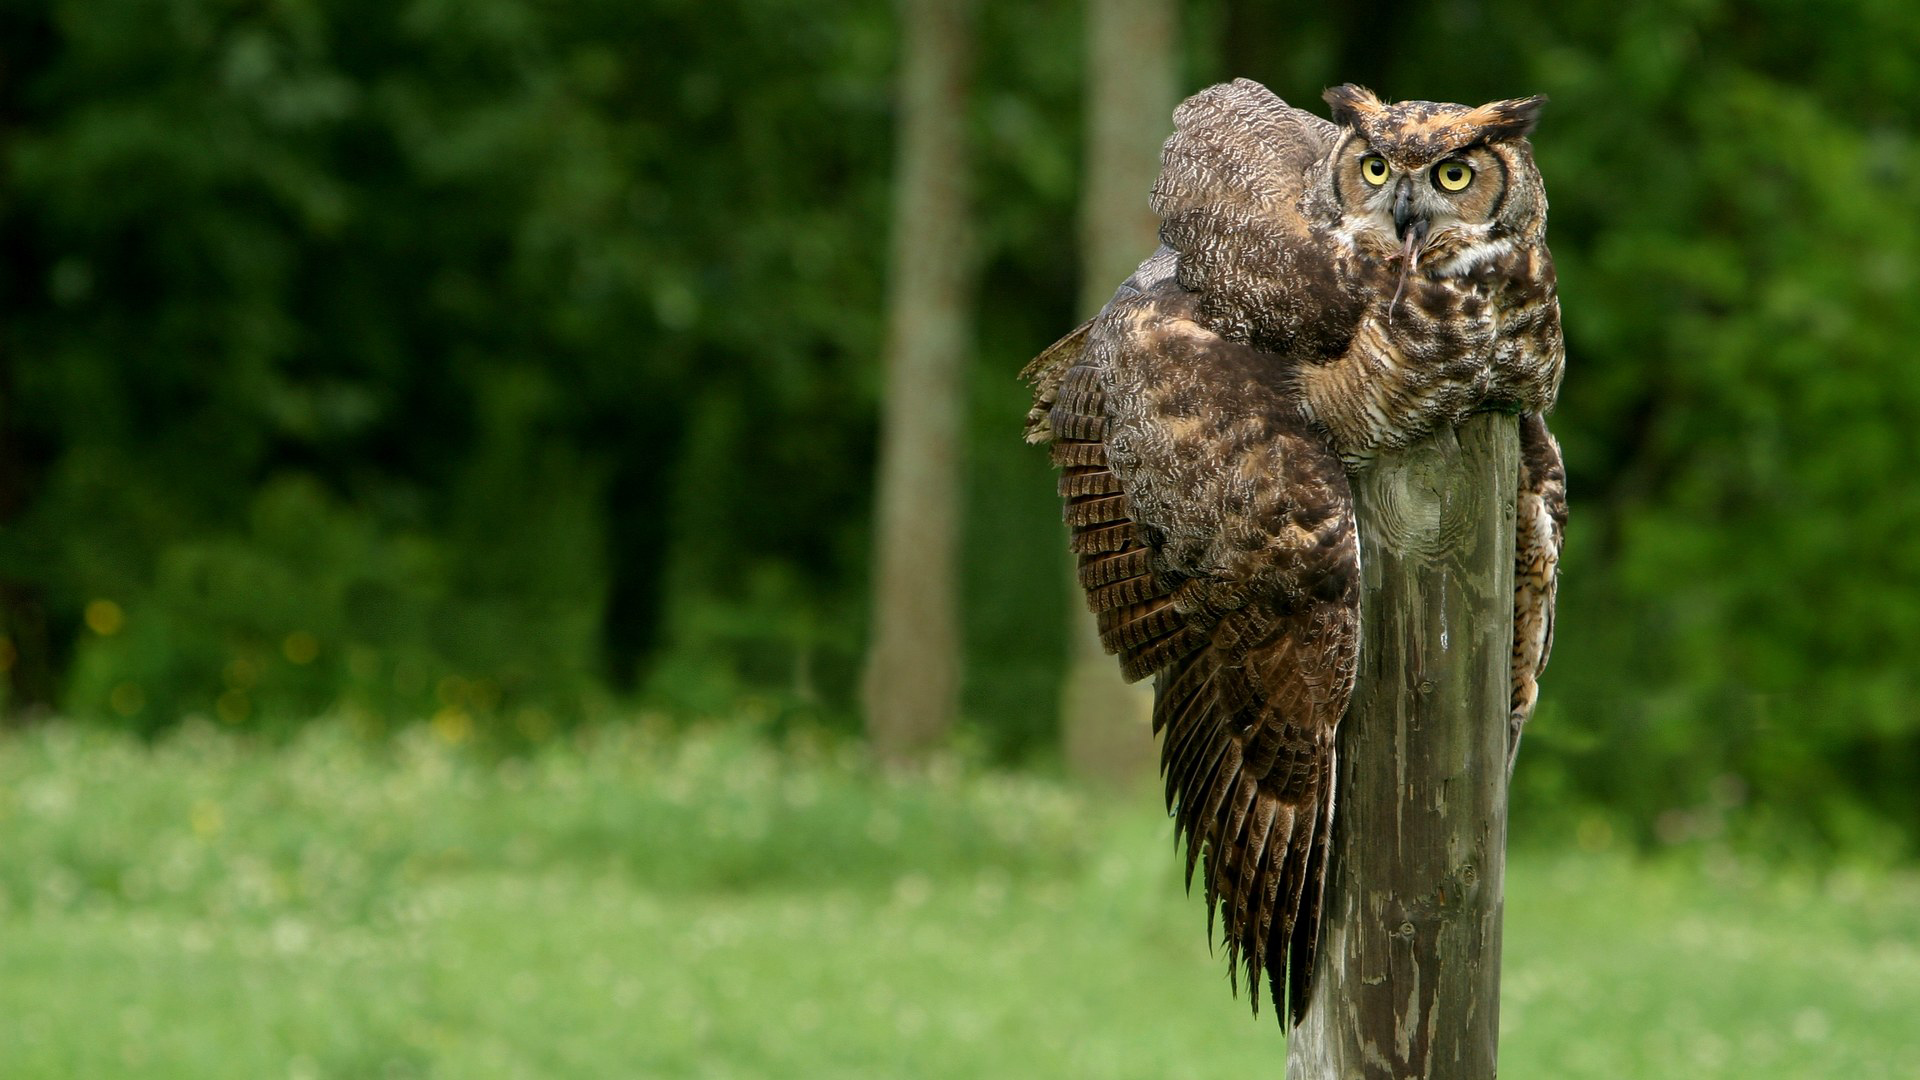 Great Horned Owl Hd Wallpaper Great Horned Owl Background